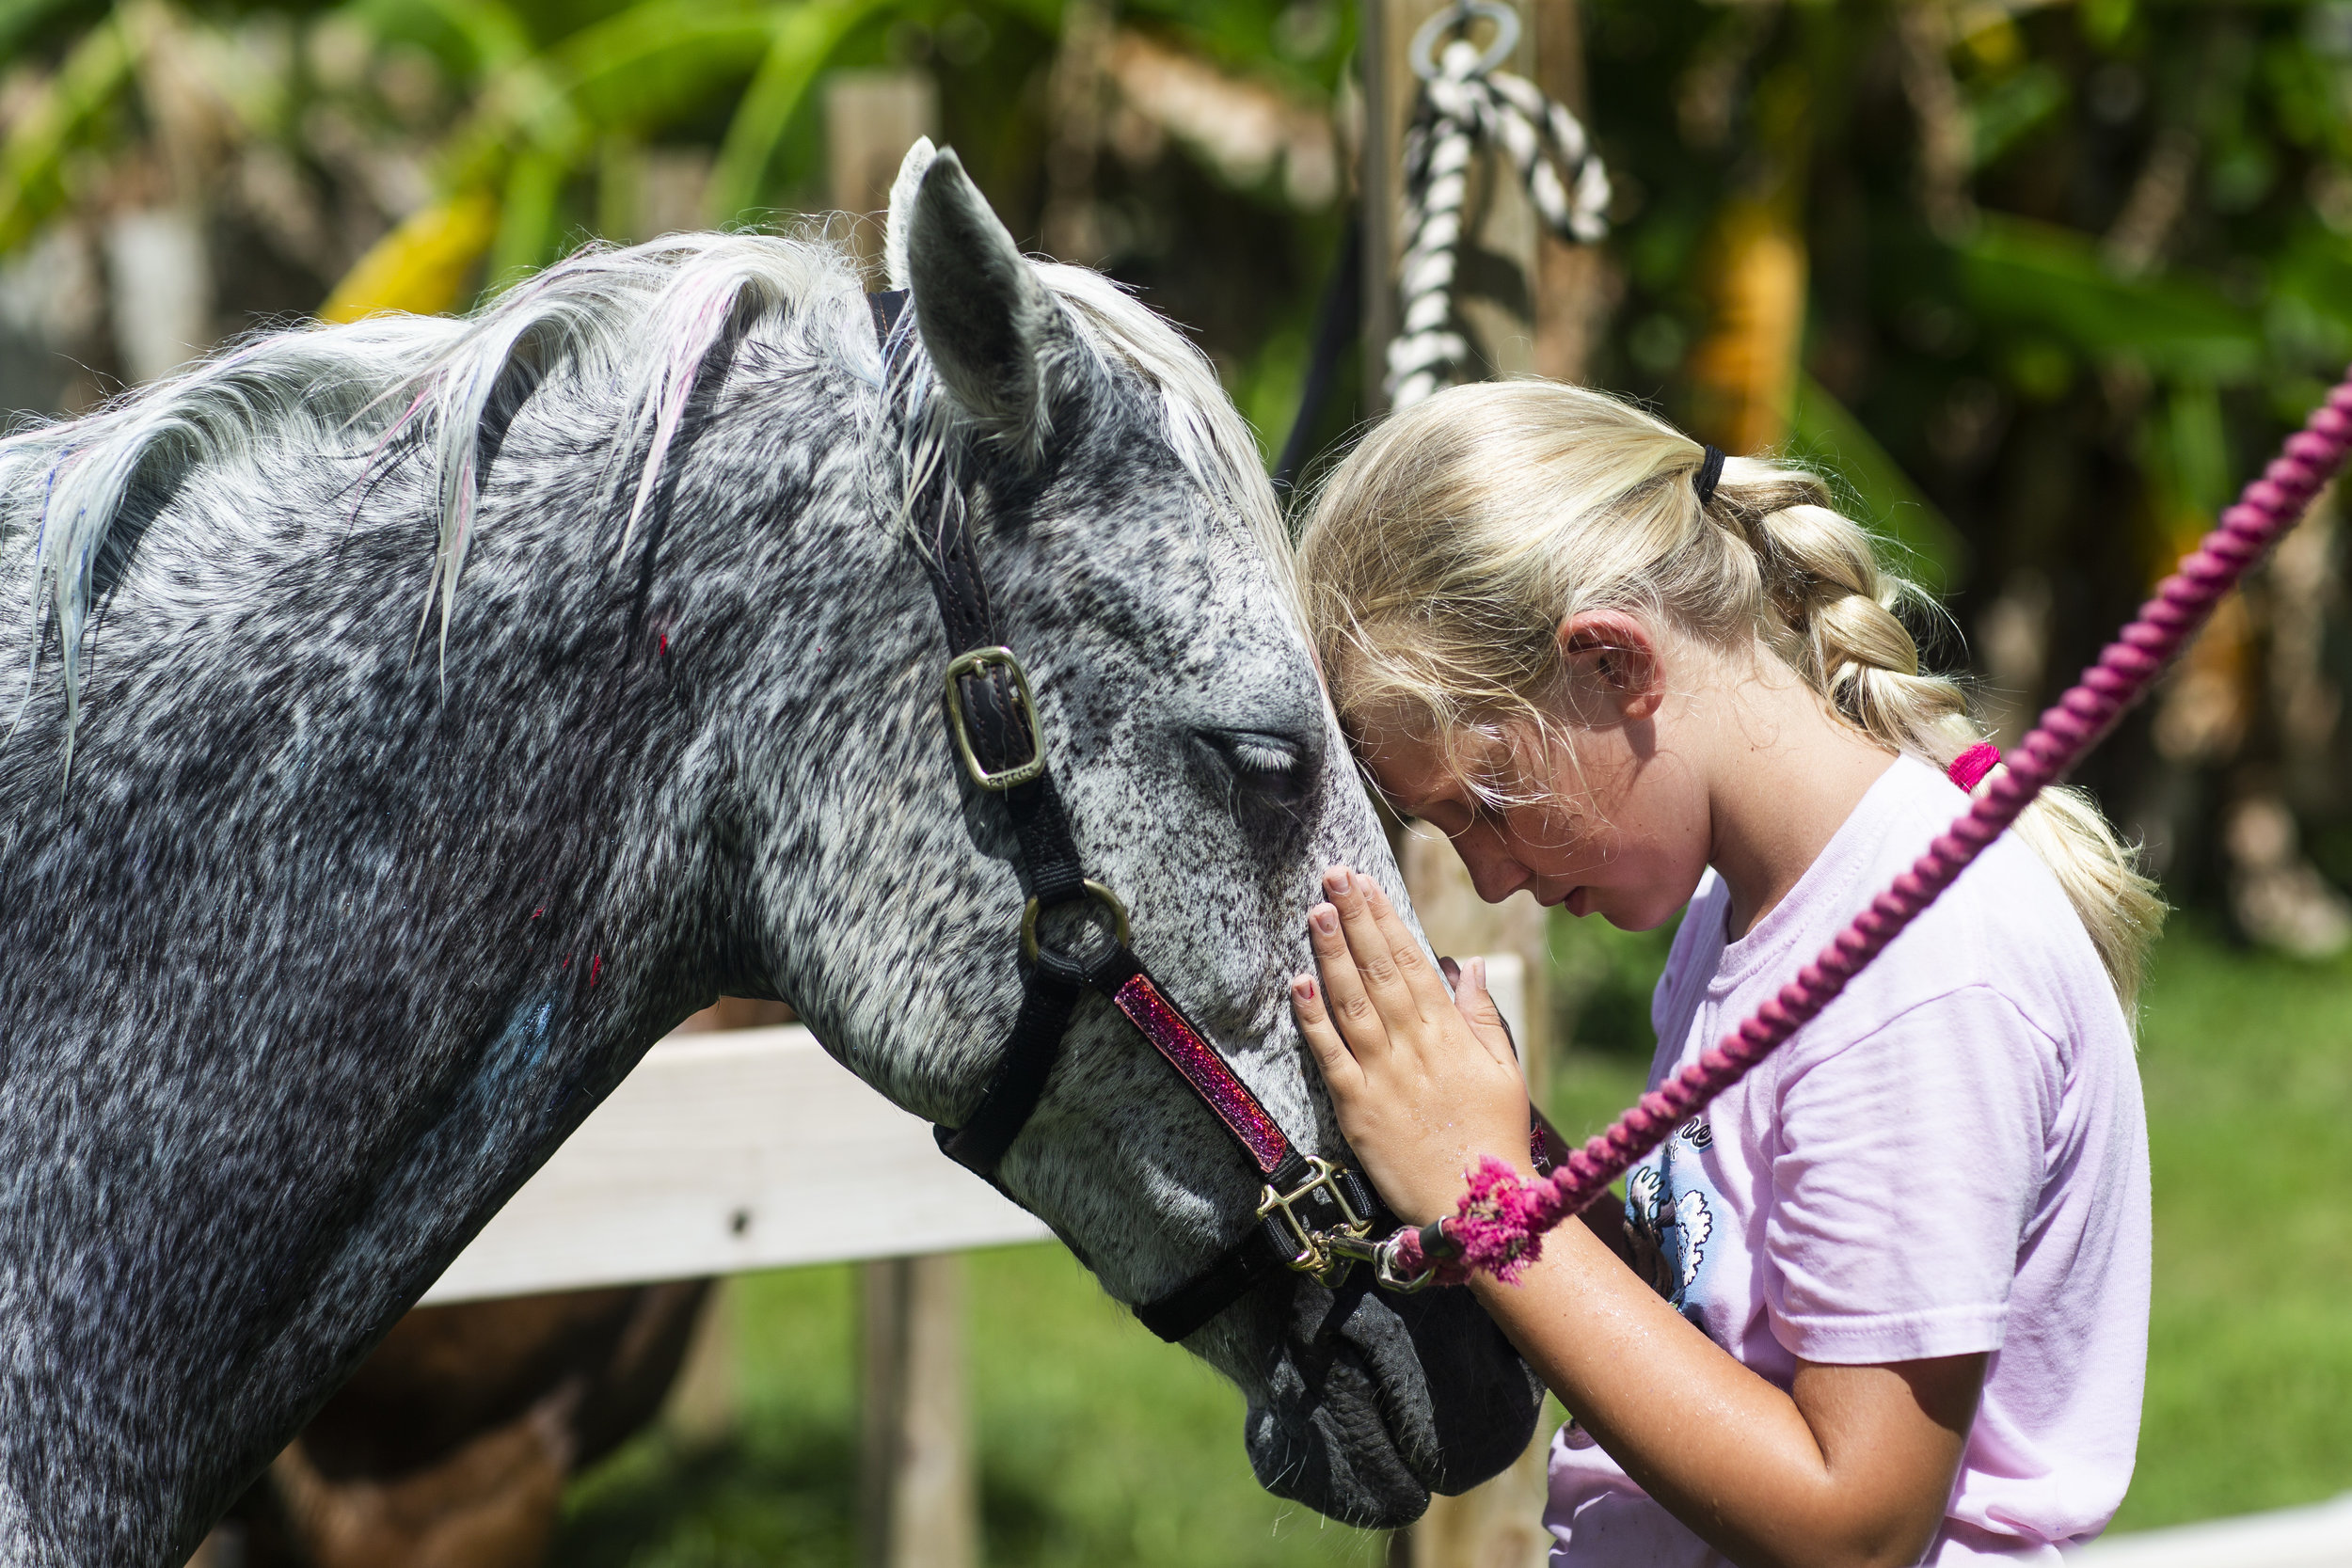 Lily Nagel, 9, shares a moment with Penny the pony during a summer equestrian session at Cornerstone Farm South in Naples on Friday June 15, 2018.